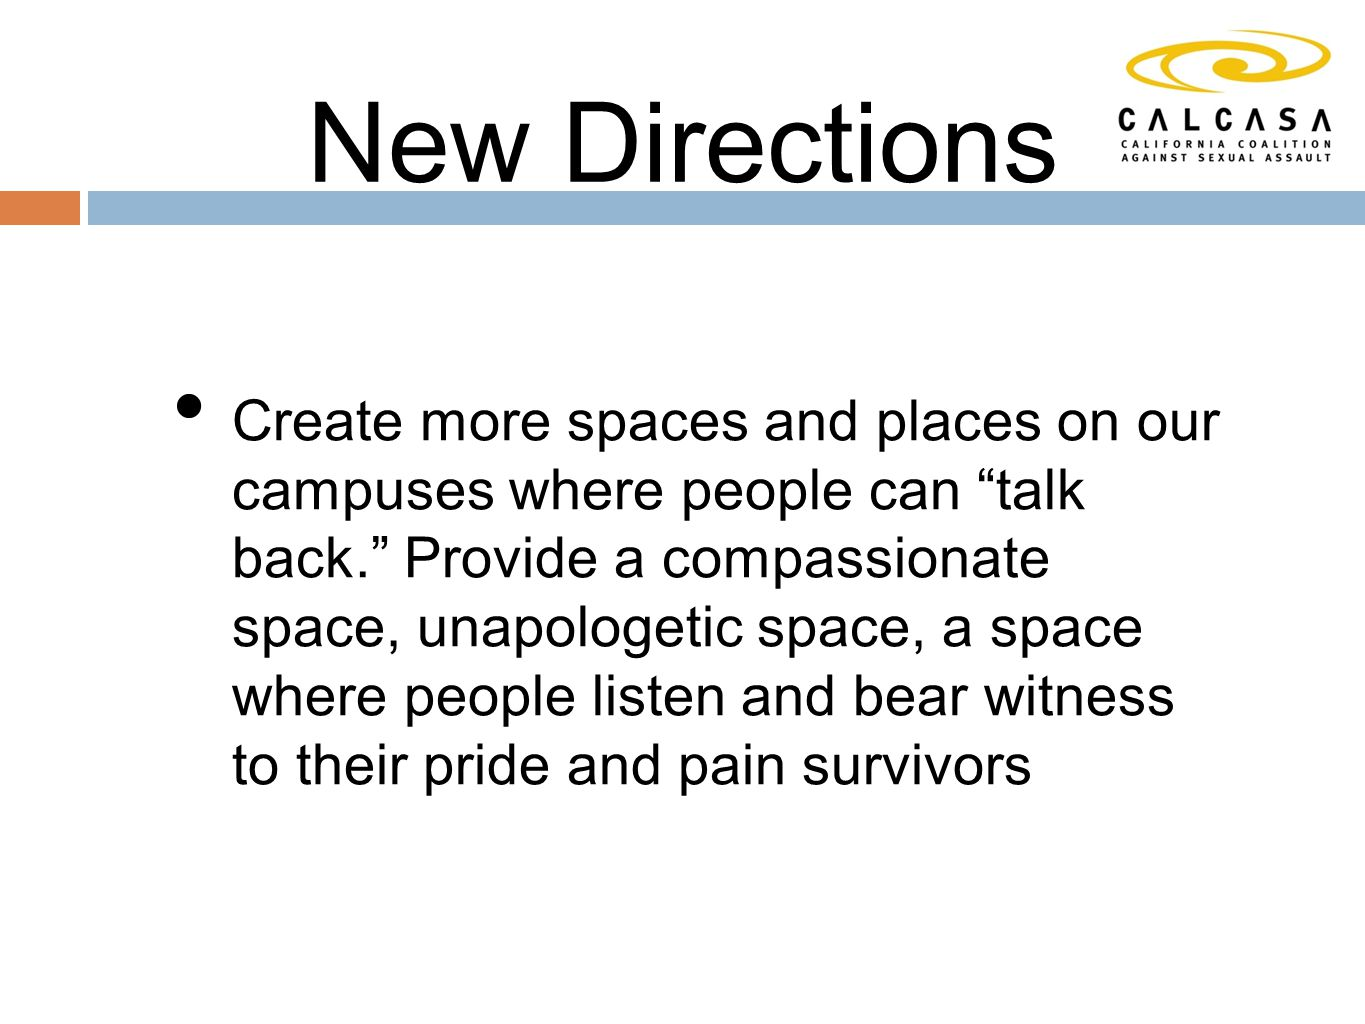 New Directions Create more spaces and places on our campuses where people can talk back. Provide a compassionate space, unapologetic space, a space where people listen and bear witness to their pride and pain survivors